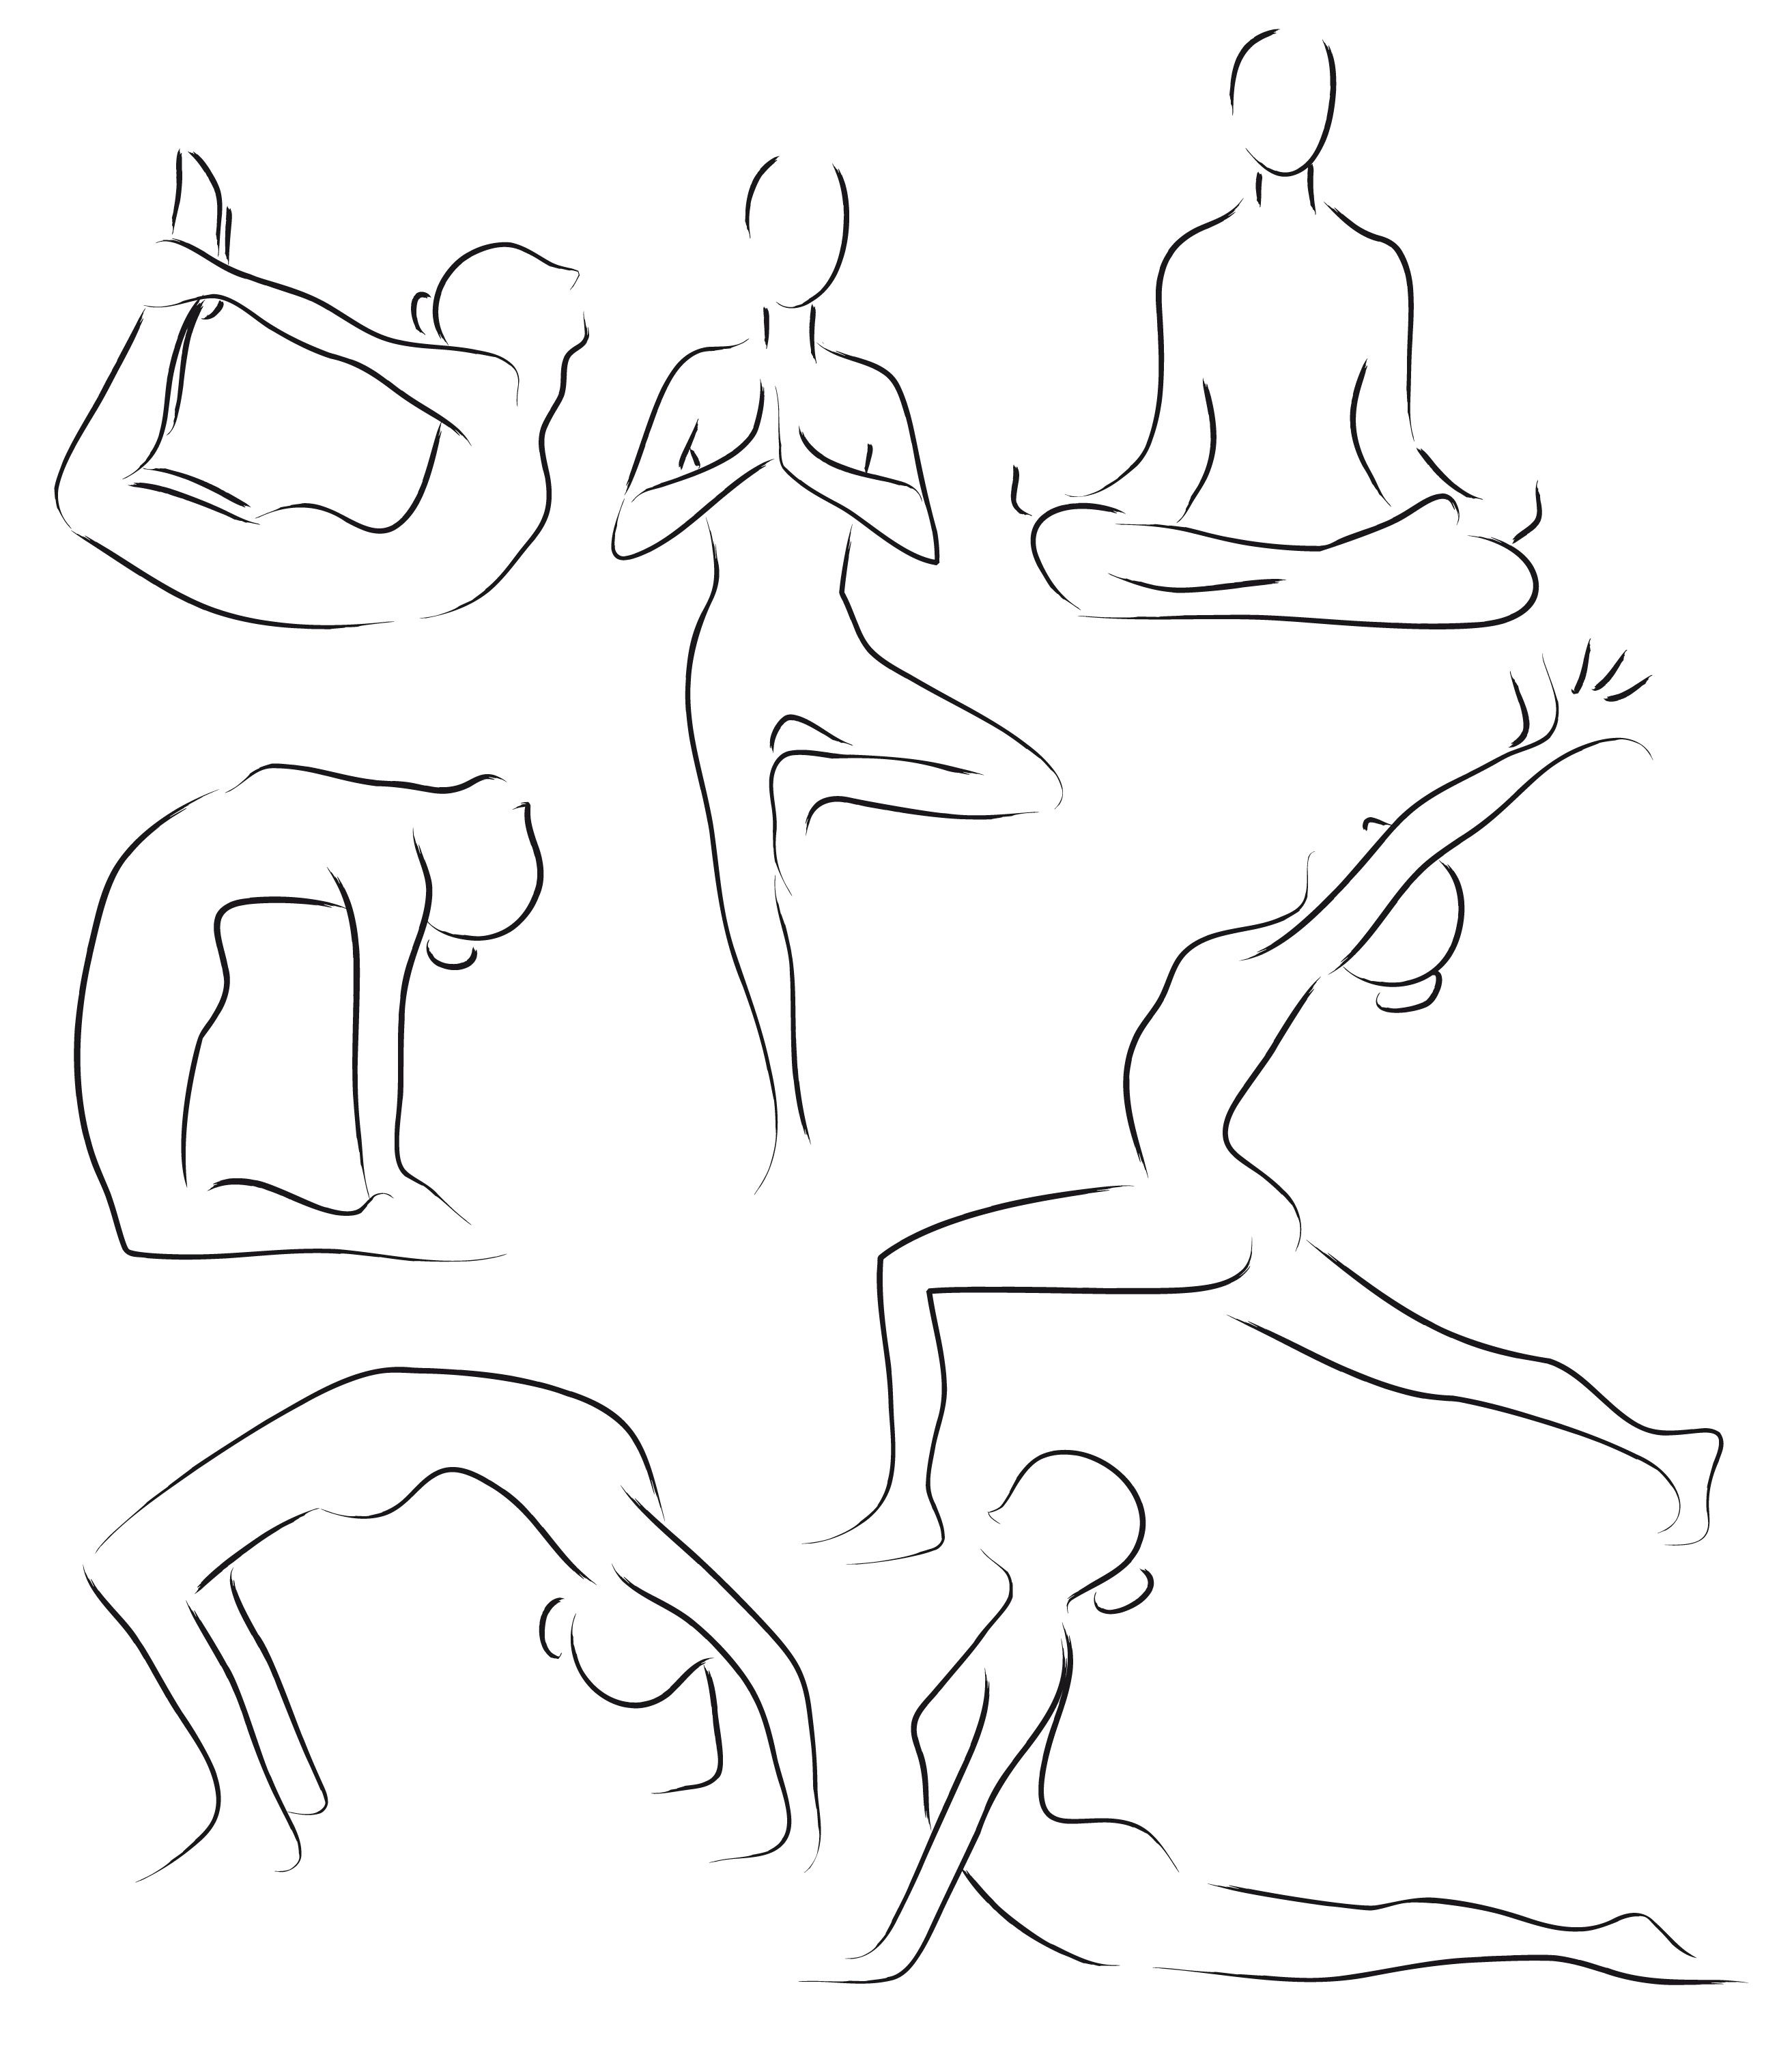 Website Inspiration Hand Drawn Silhouettes Yoga Drawing Yoga Art Yoga Art Painting